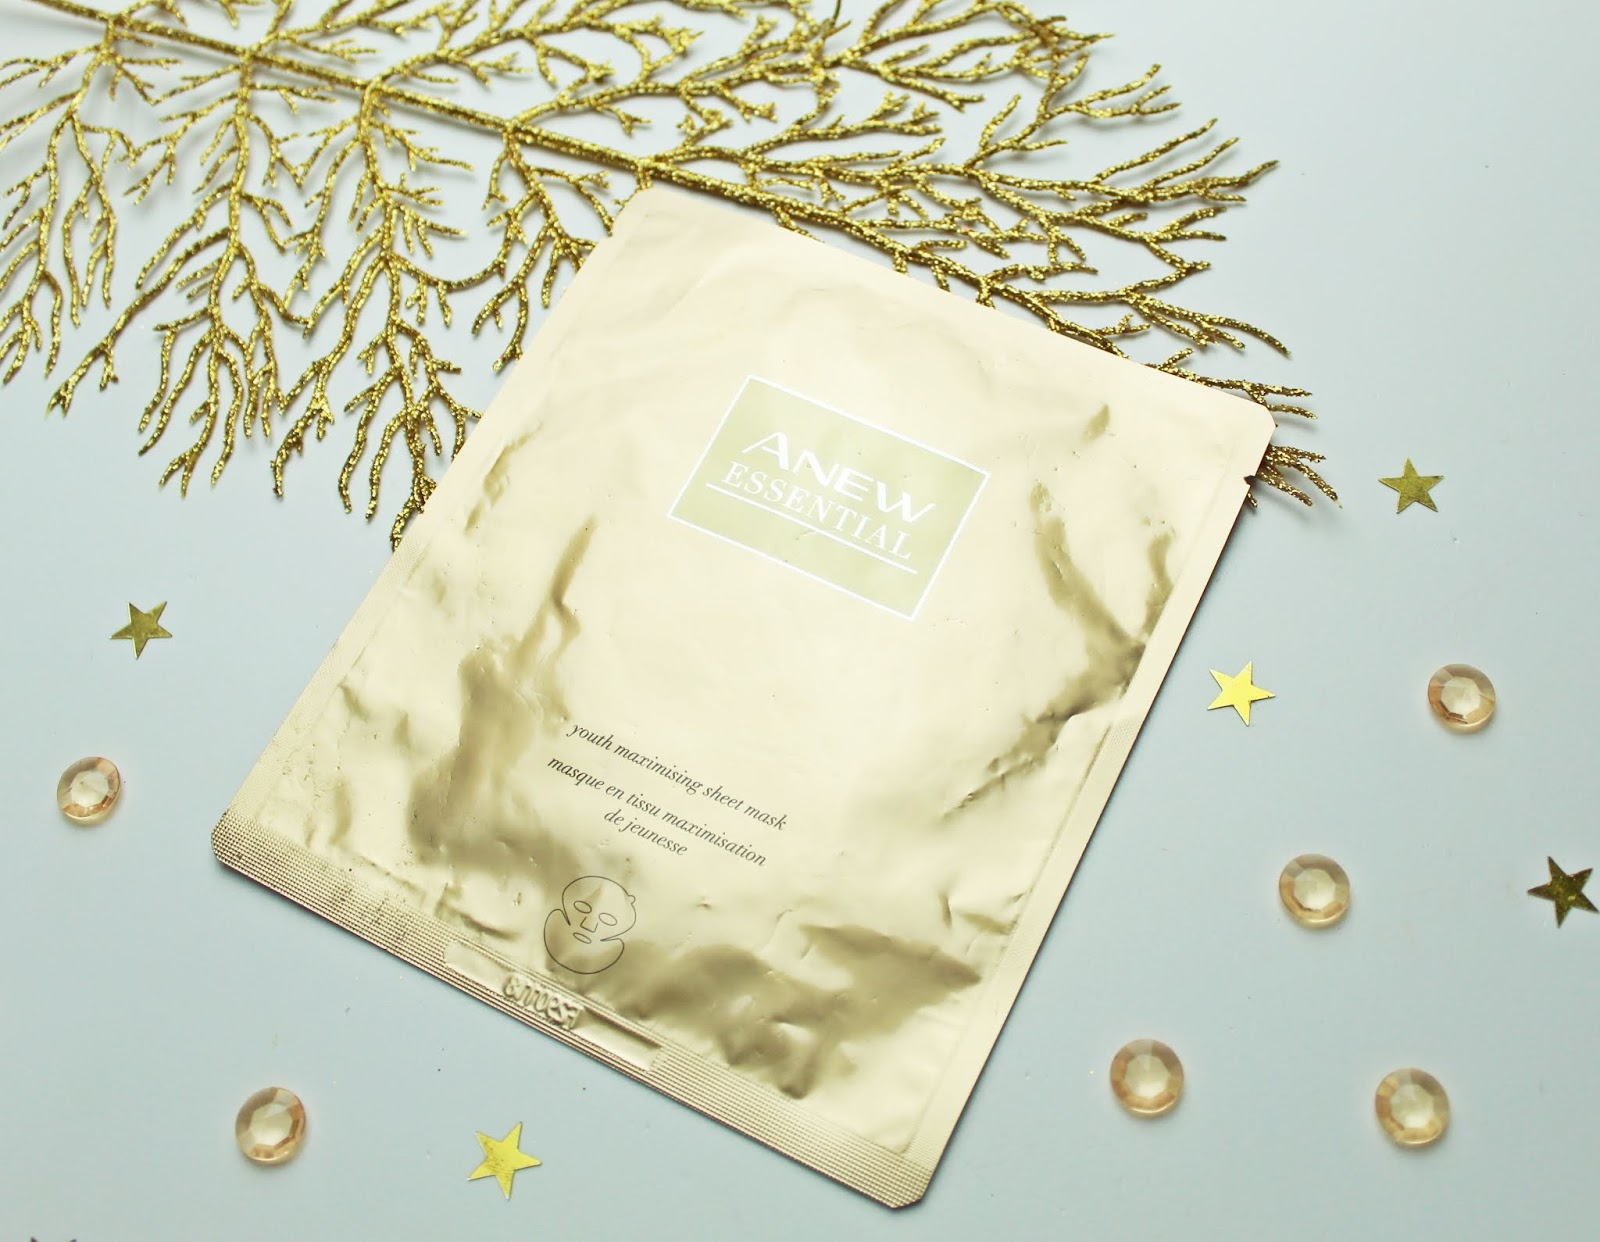 Avon Anew EssencialYouth Maximising Sheet Mask